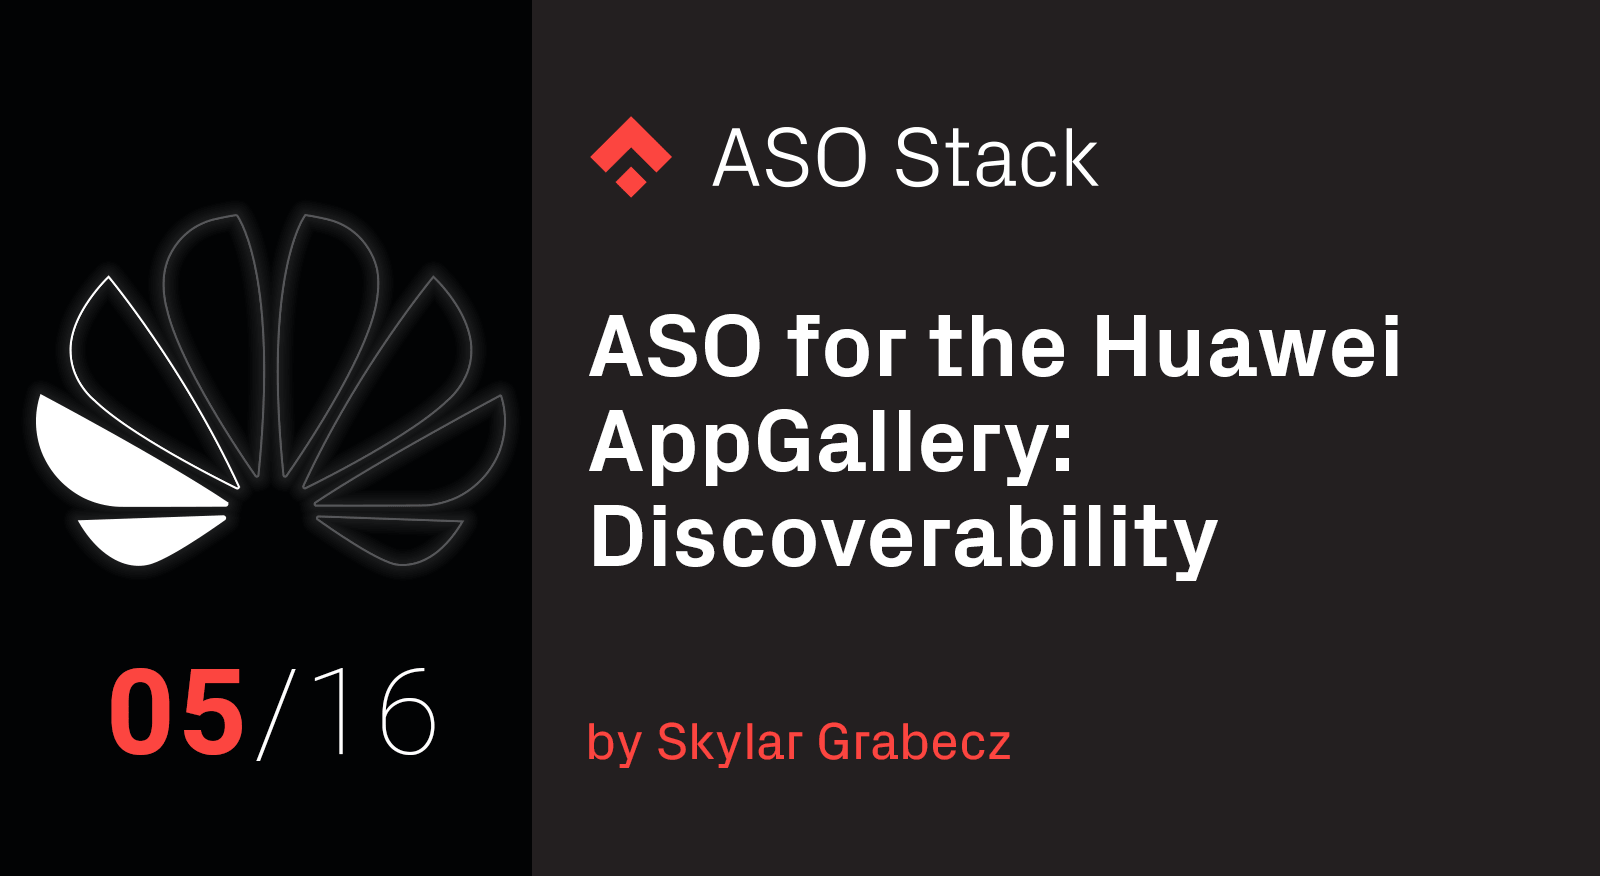 ASO for the Huawei AppGallery- Discoverability